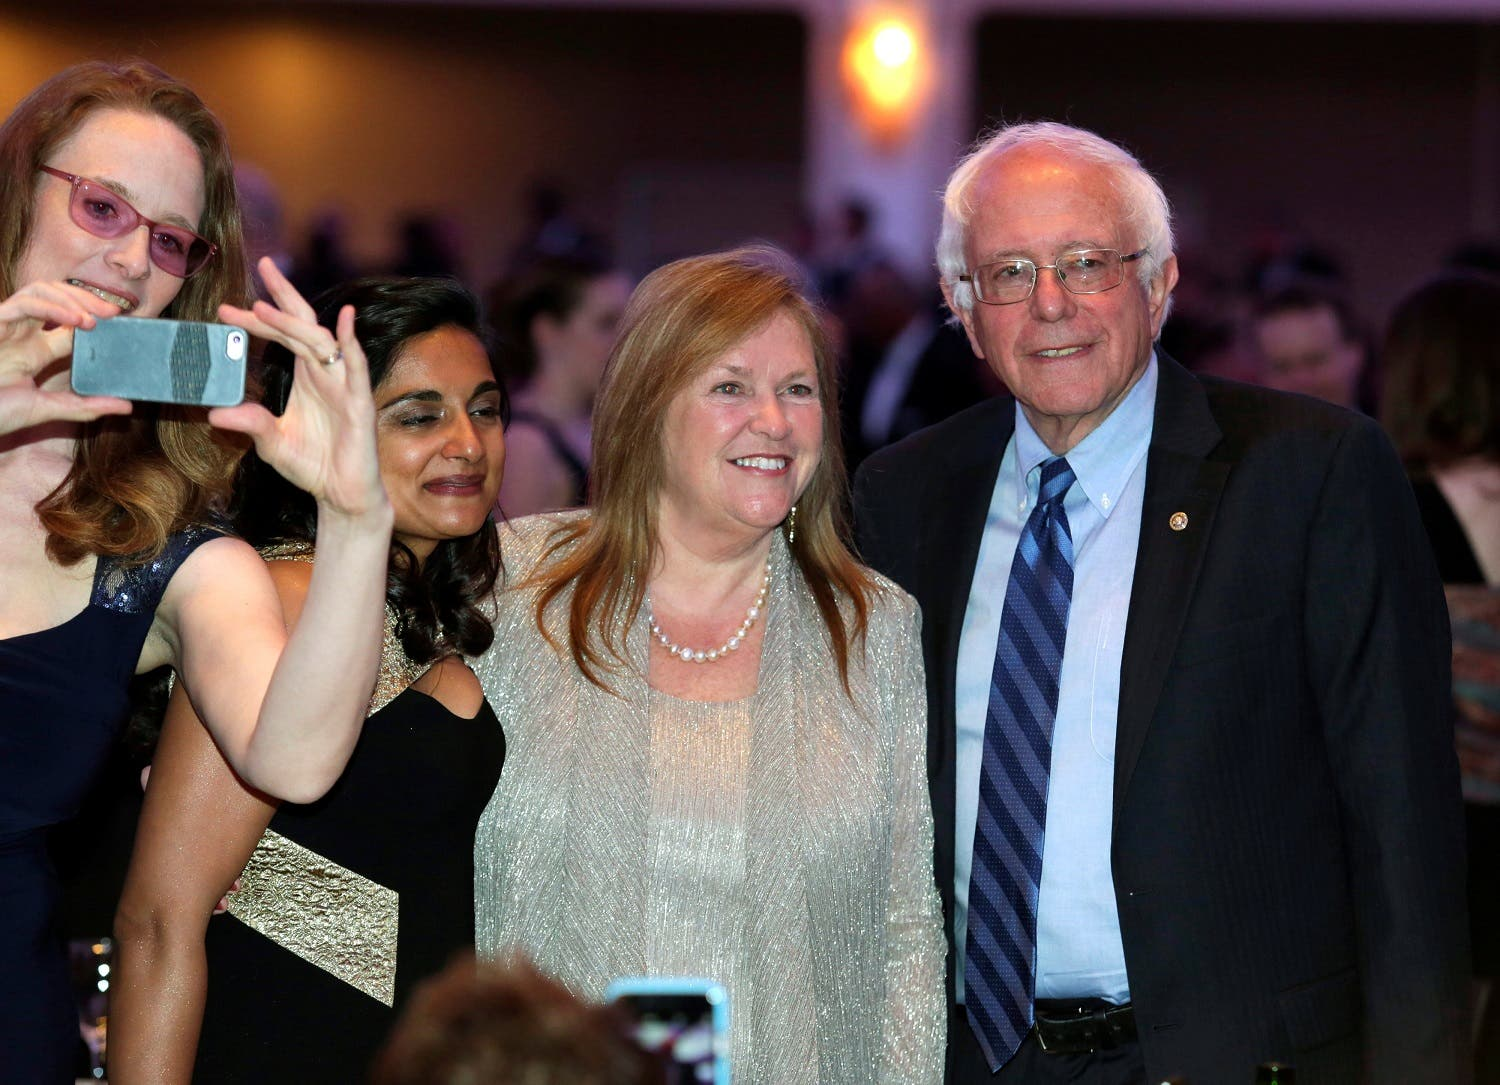 Democratic U.S. presidential candidate Bernie Sanders and his wife Jane (2nd R) attend the White House Correspondents' Association annual dinner in Washington, U.S. April 30, 2016. REUTERS